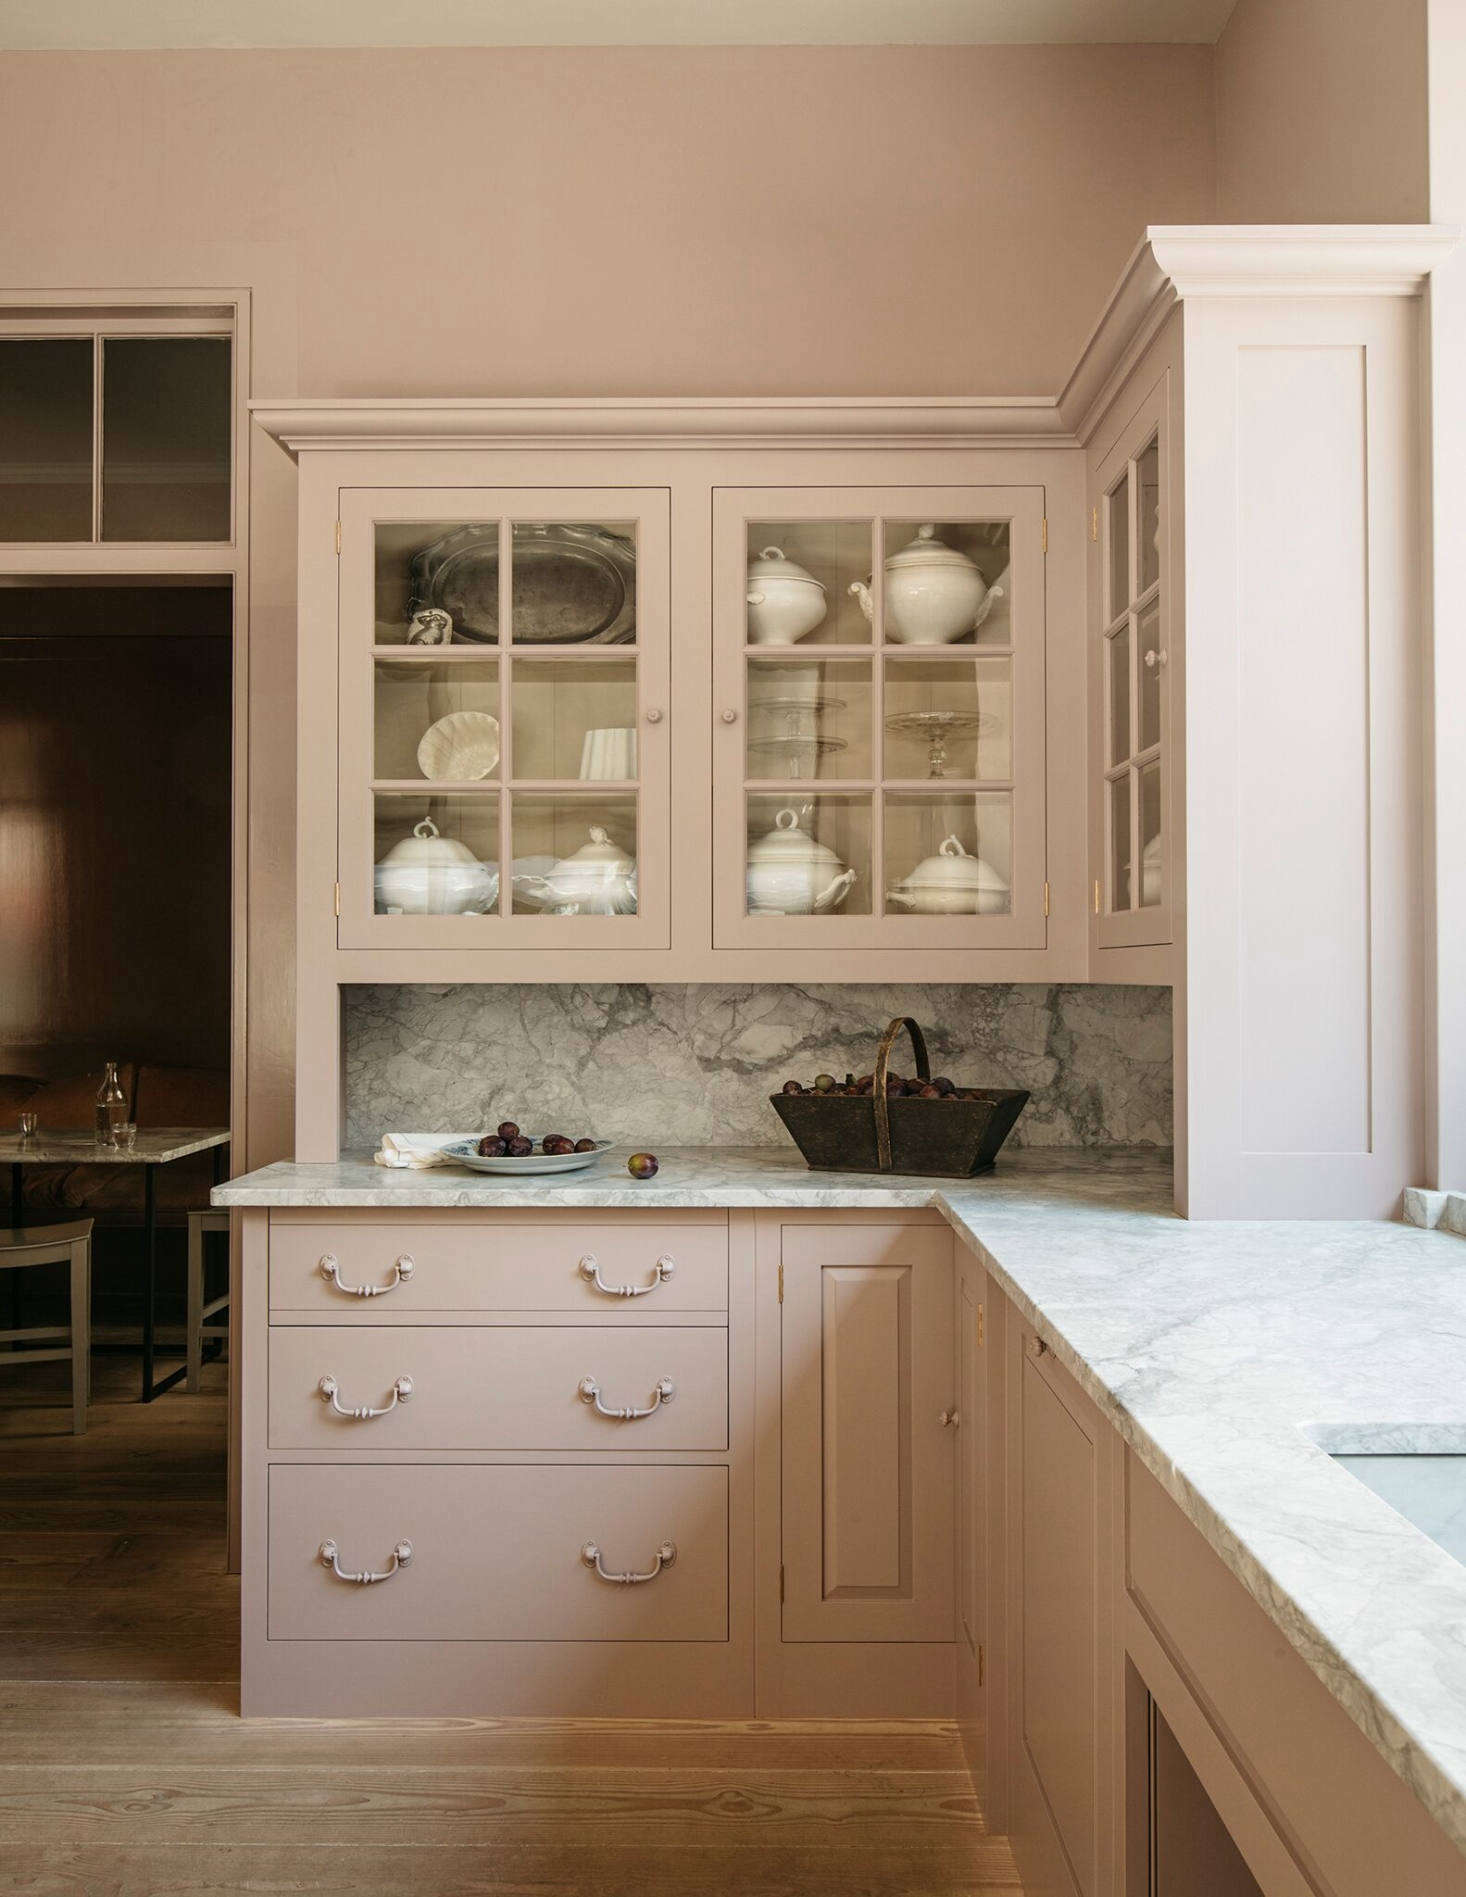 The cabinets in the Marylebone showroom are painted in Mouldy Plum, &#8